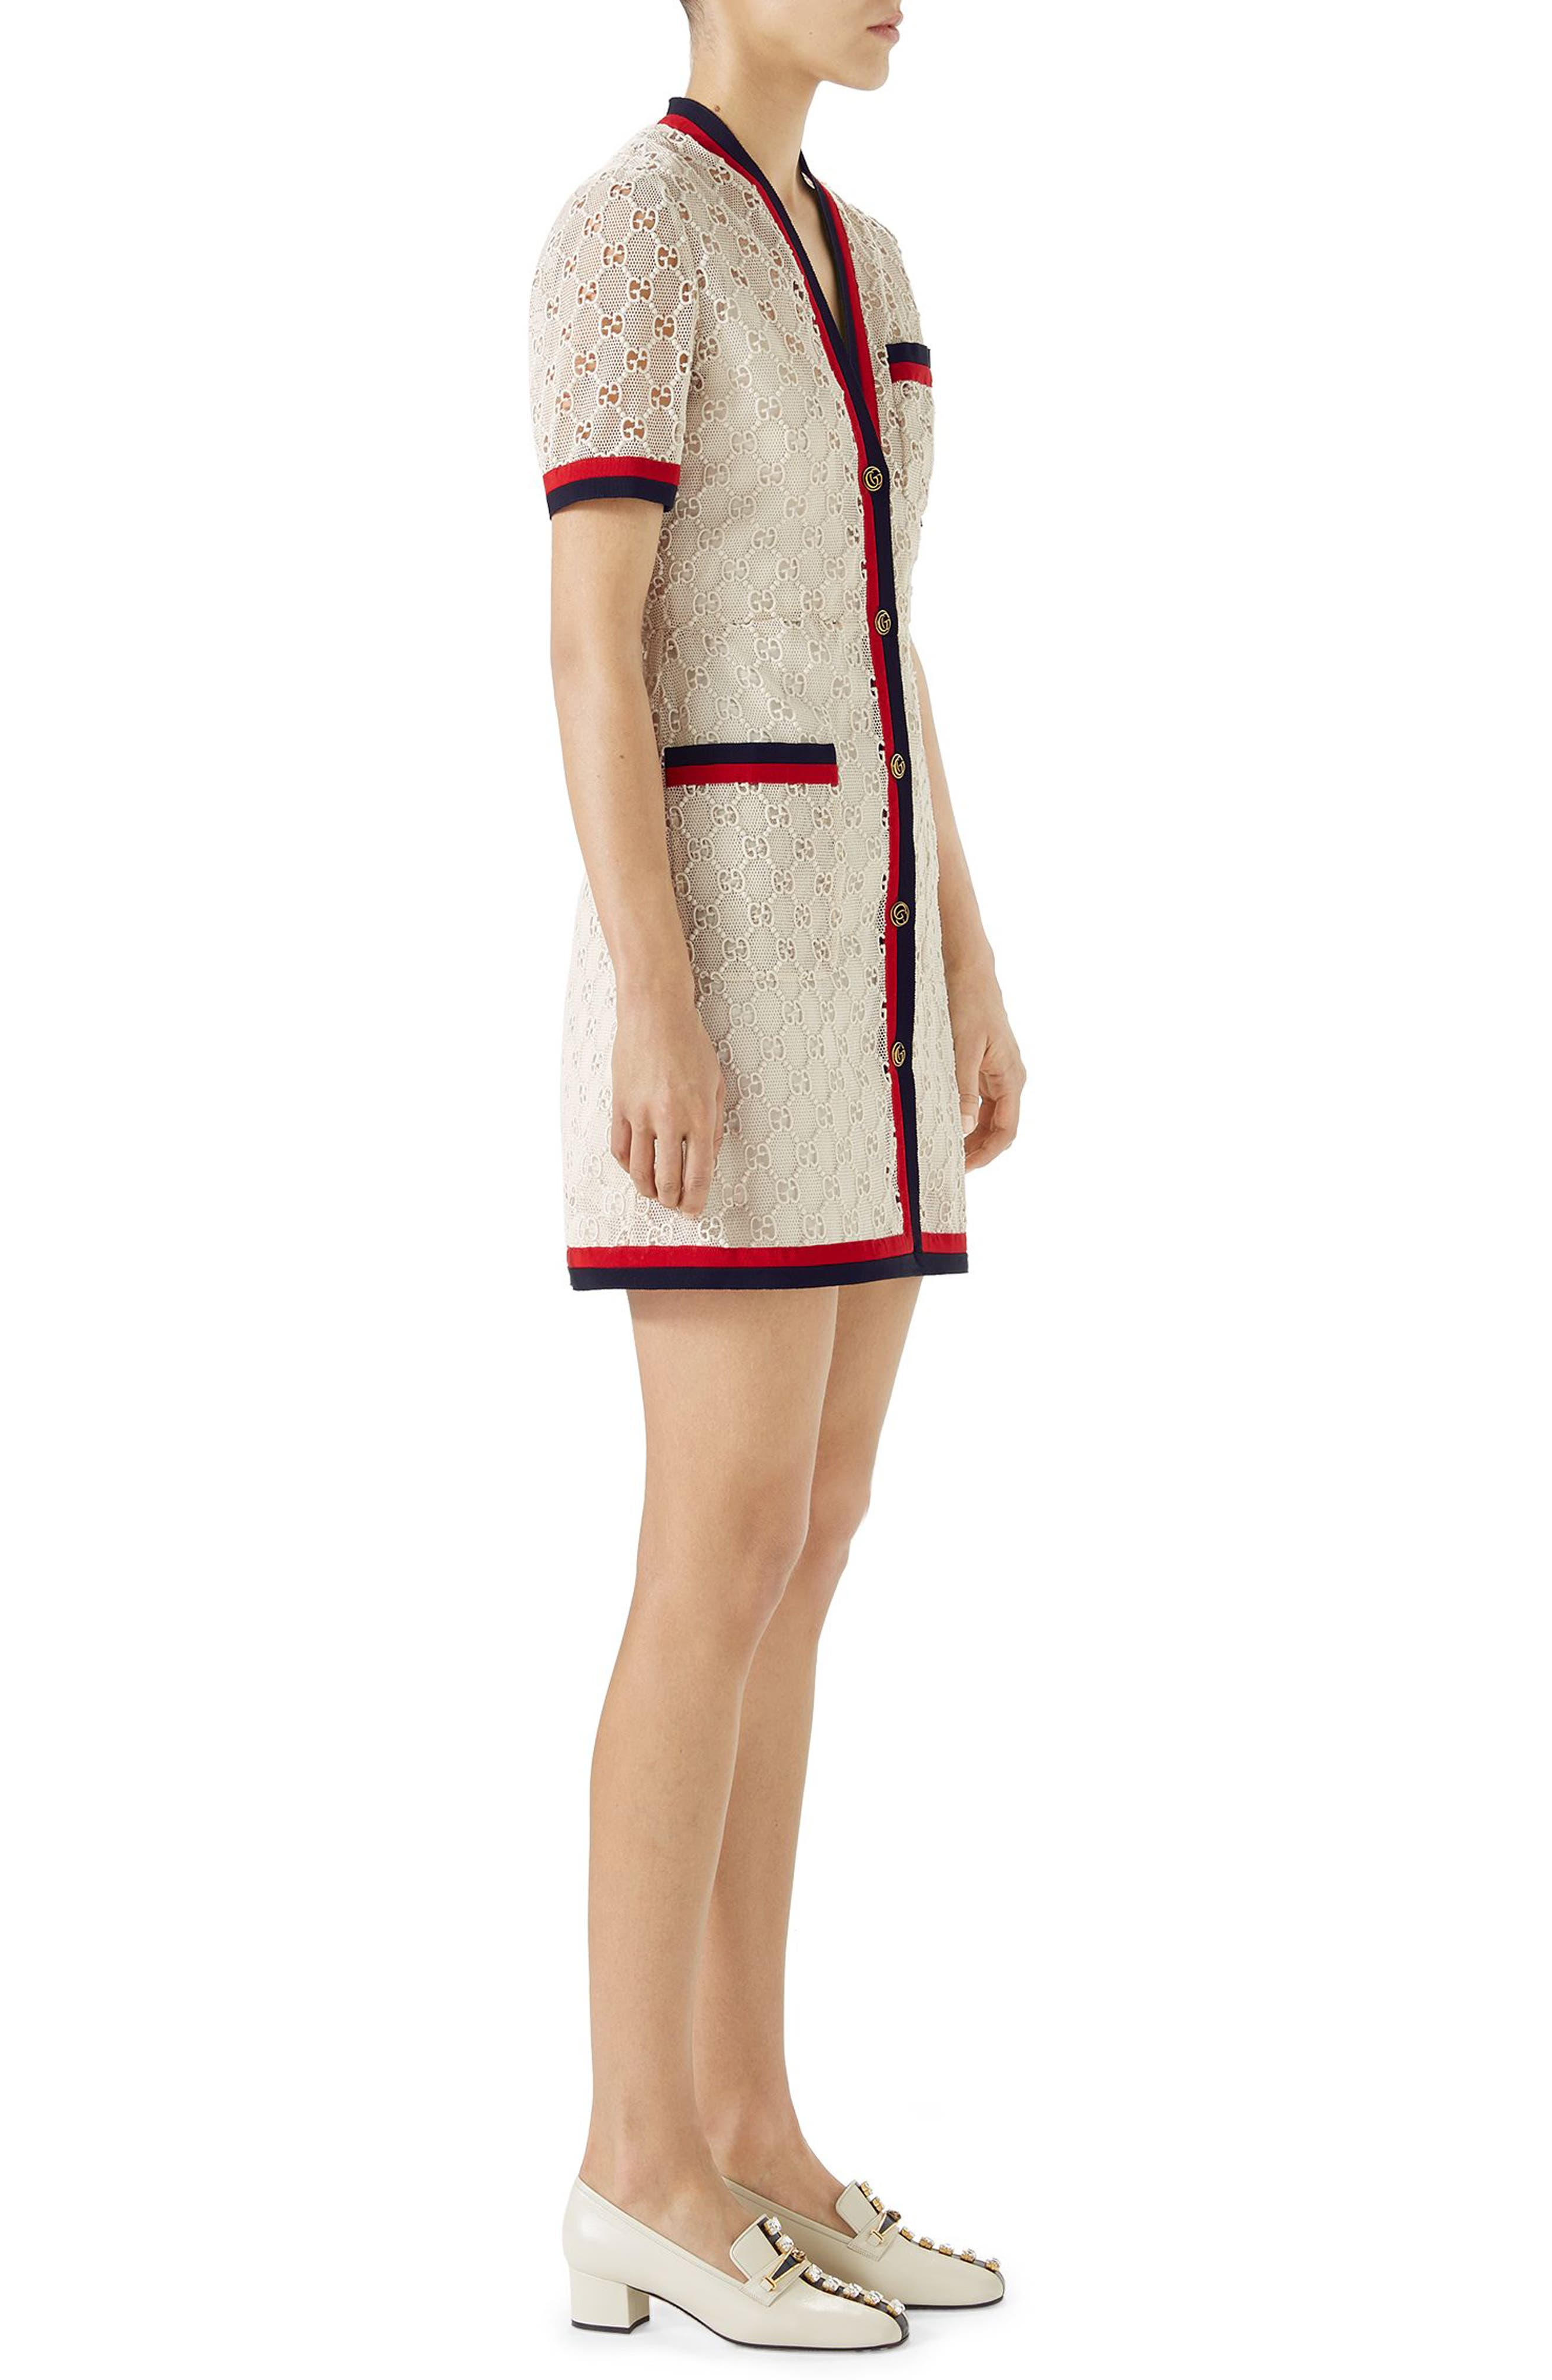 GG Macramé Dress,                             Alternate thumbnail 3, color,                             GARDENIA/ RED/ BK/ RED